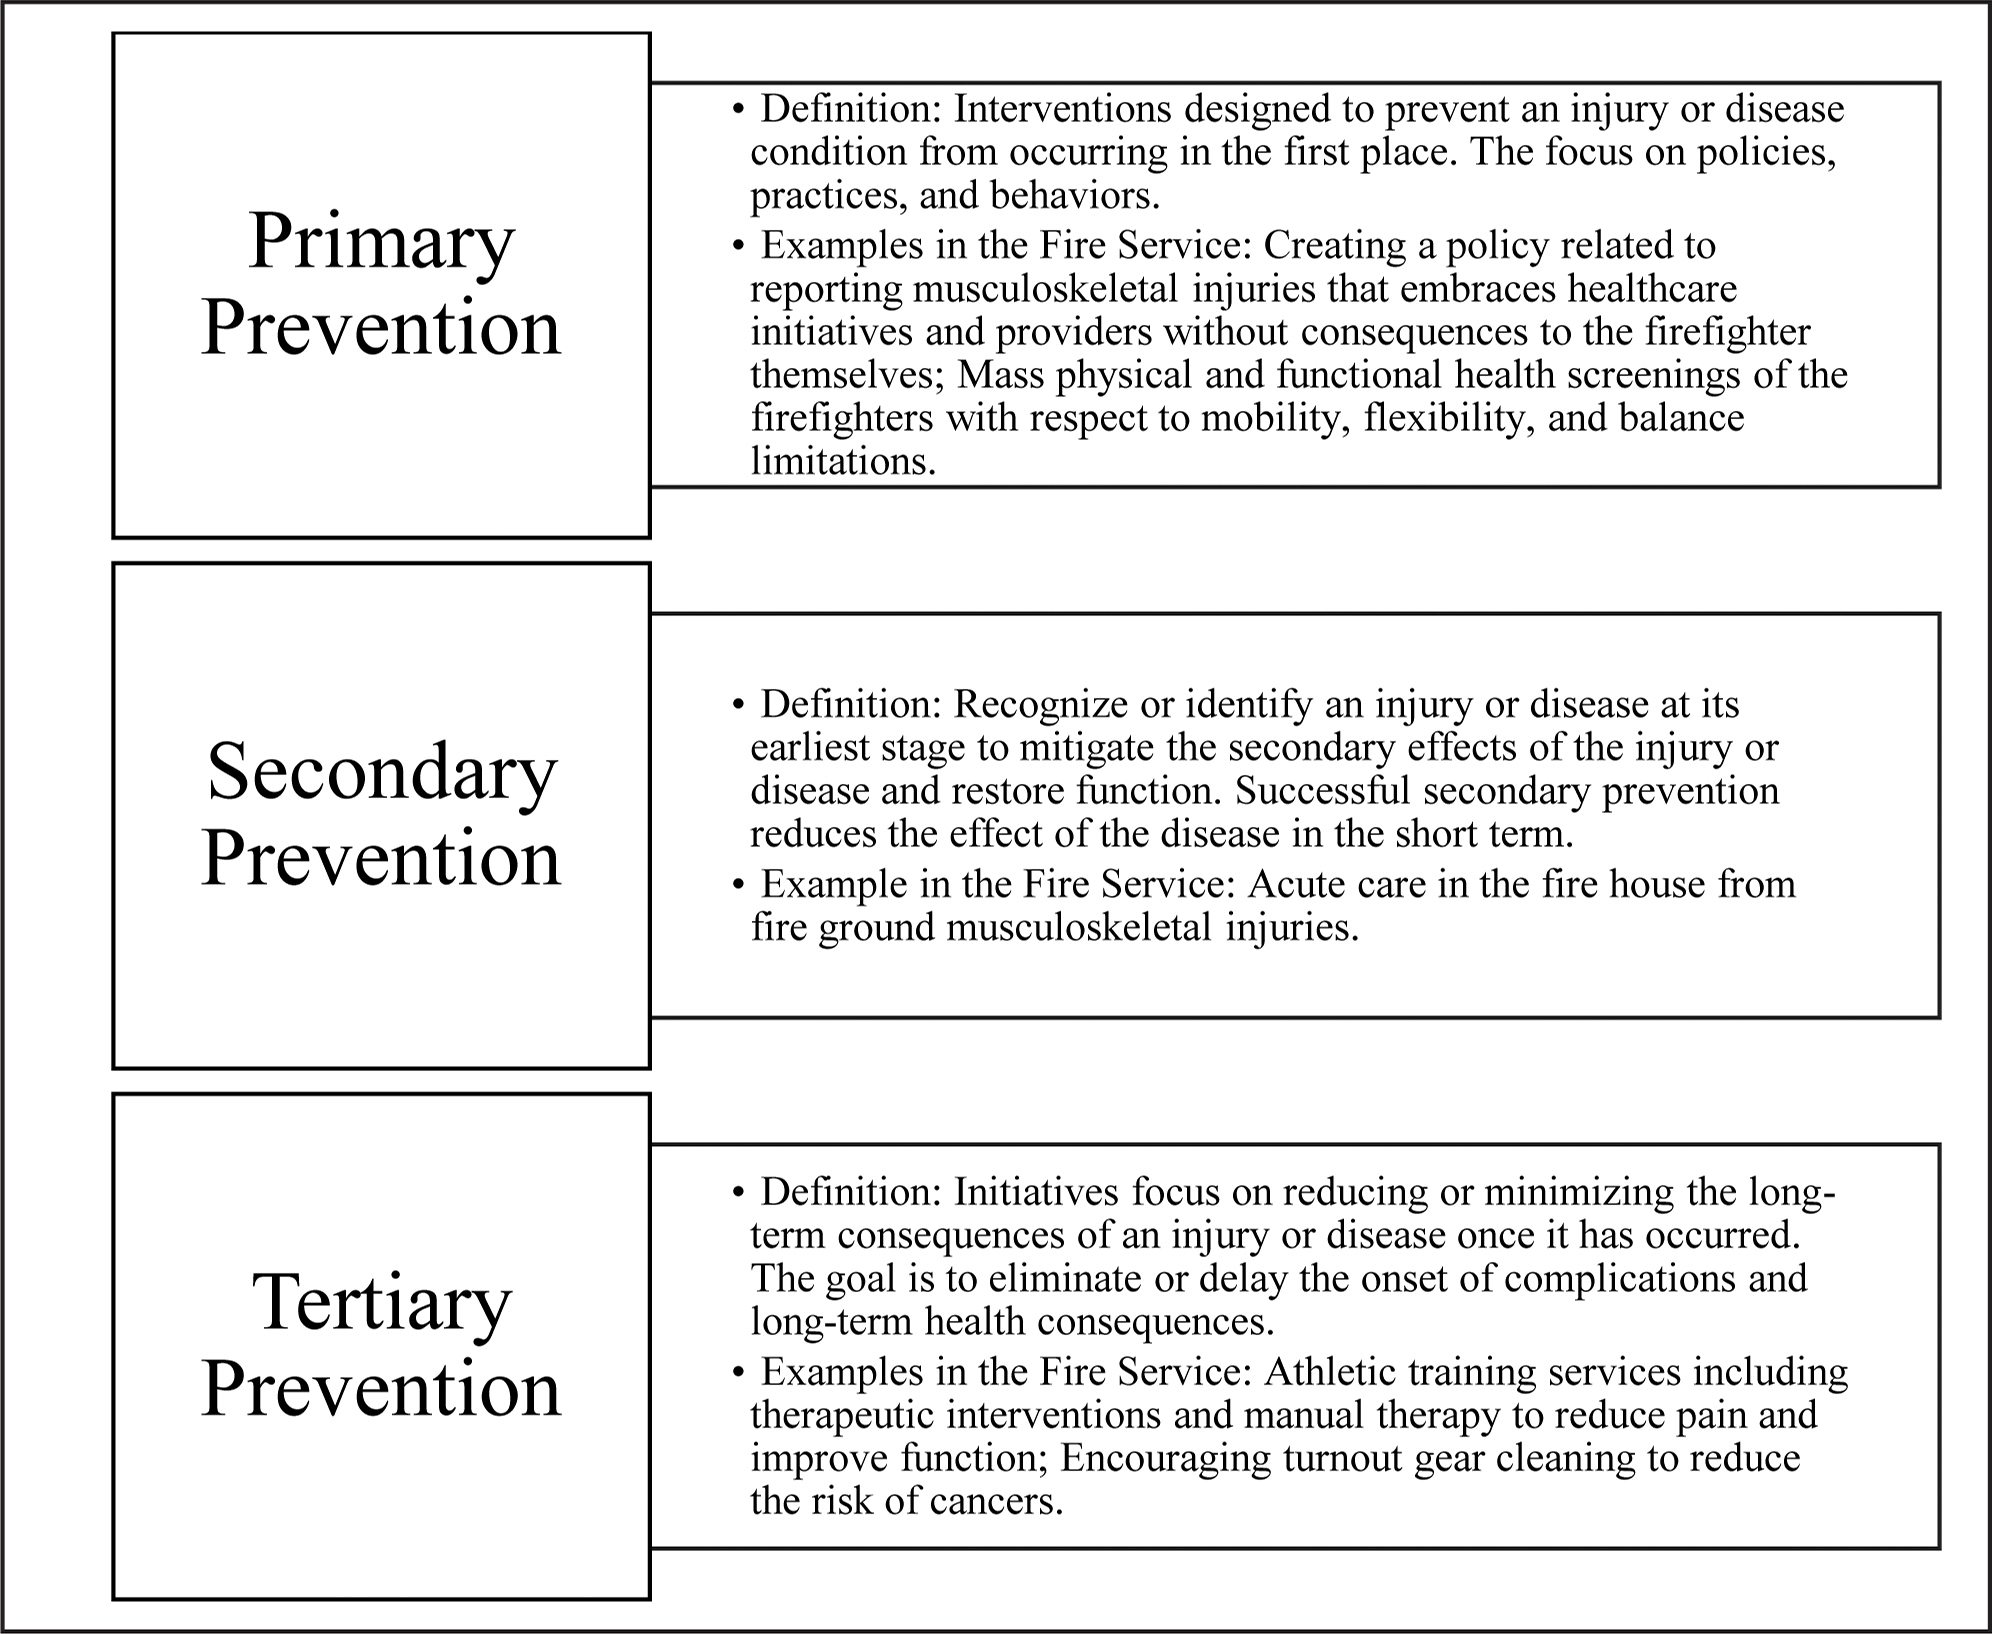 Prevention Methods related to the Fire Service. Definitions adopted from: Hoffman M, Bovbjerg V, Hannigan K, Hootman JM, Johnson ST, Kucera KL, Norcross MF. Athletic training and public health summit. J Athl Train. 2016;51(7):576–580.